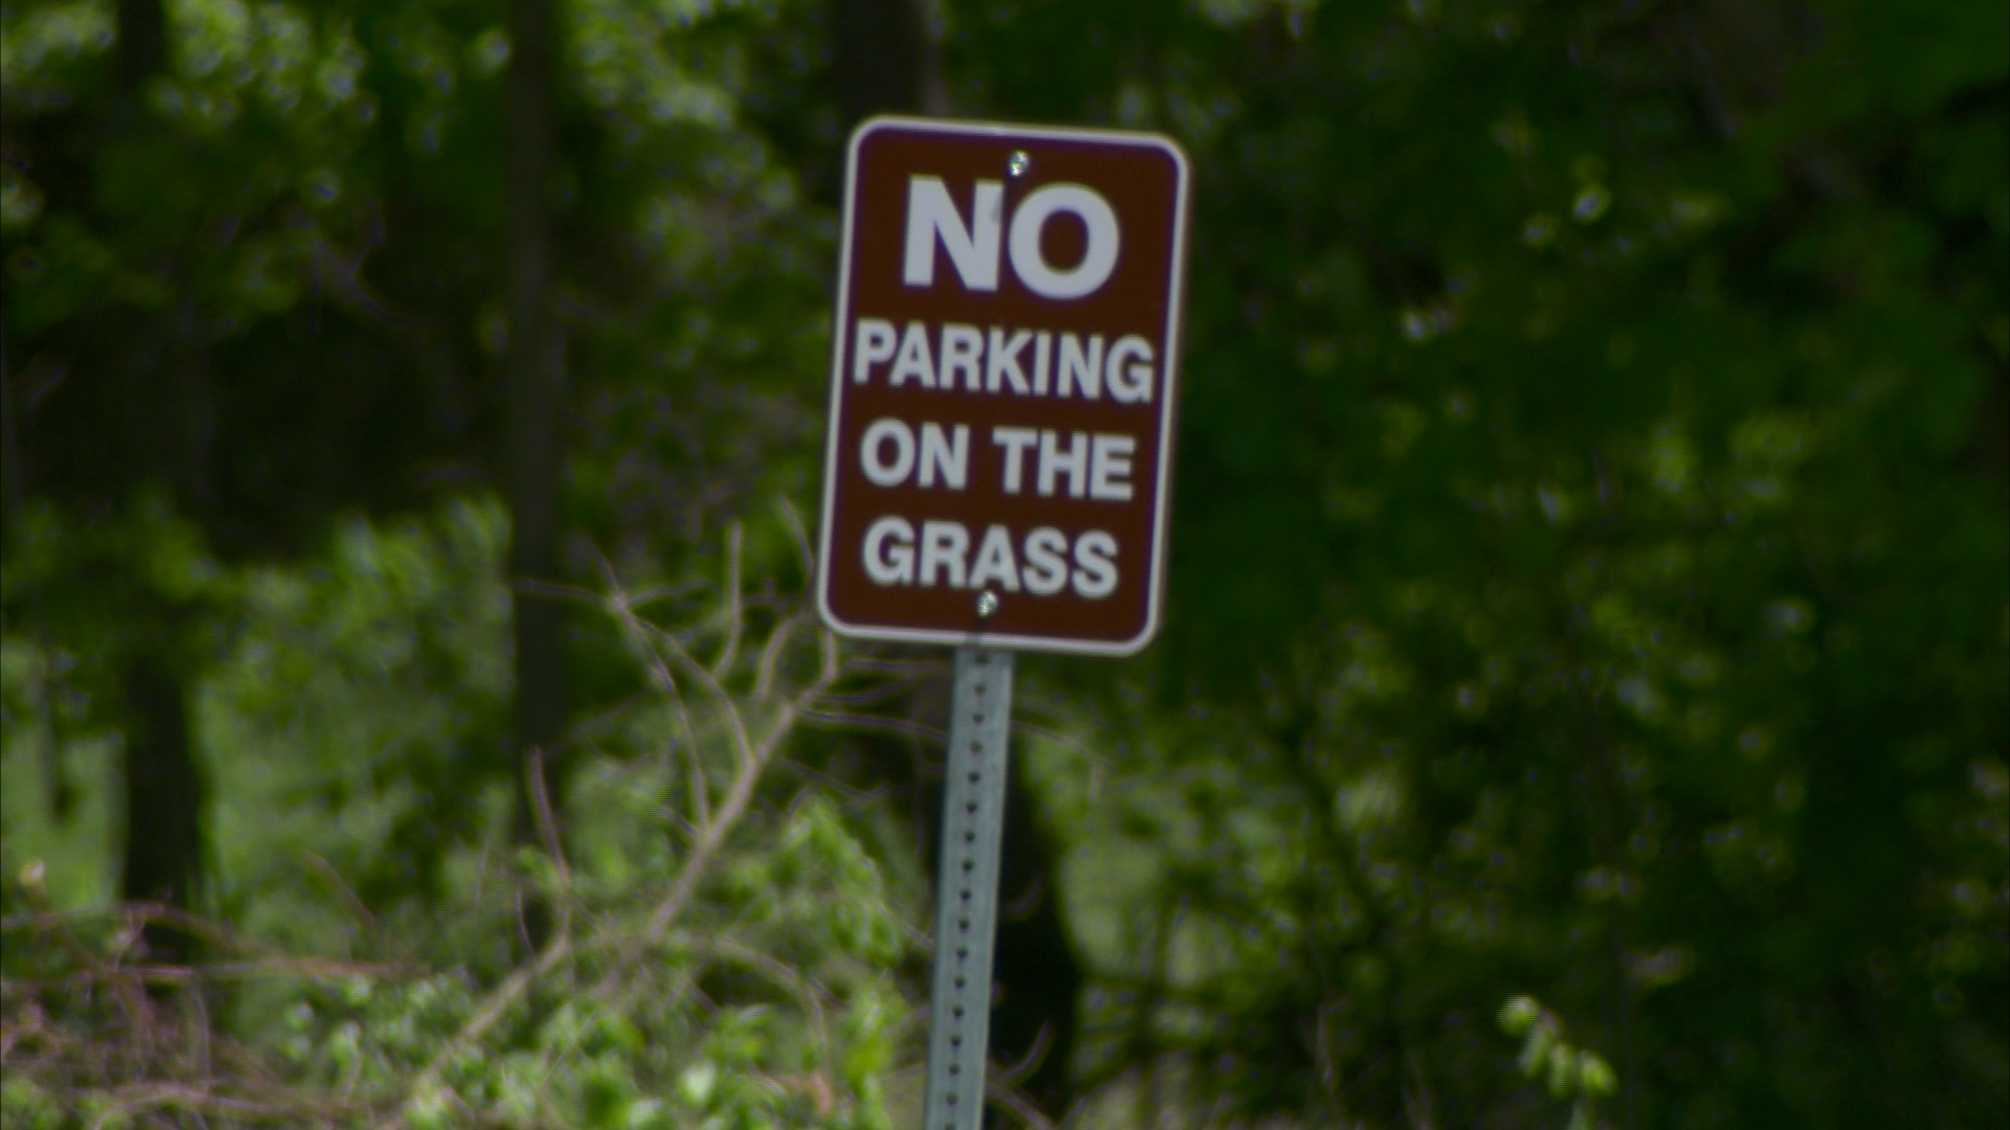 No parking on the grass at North Park.jpg